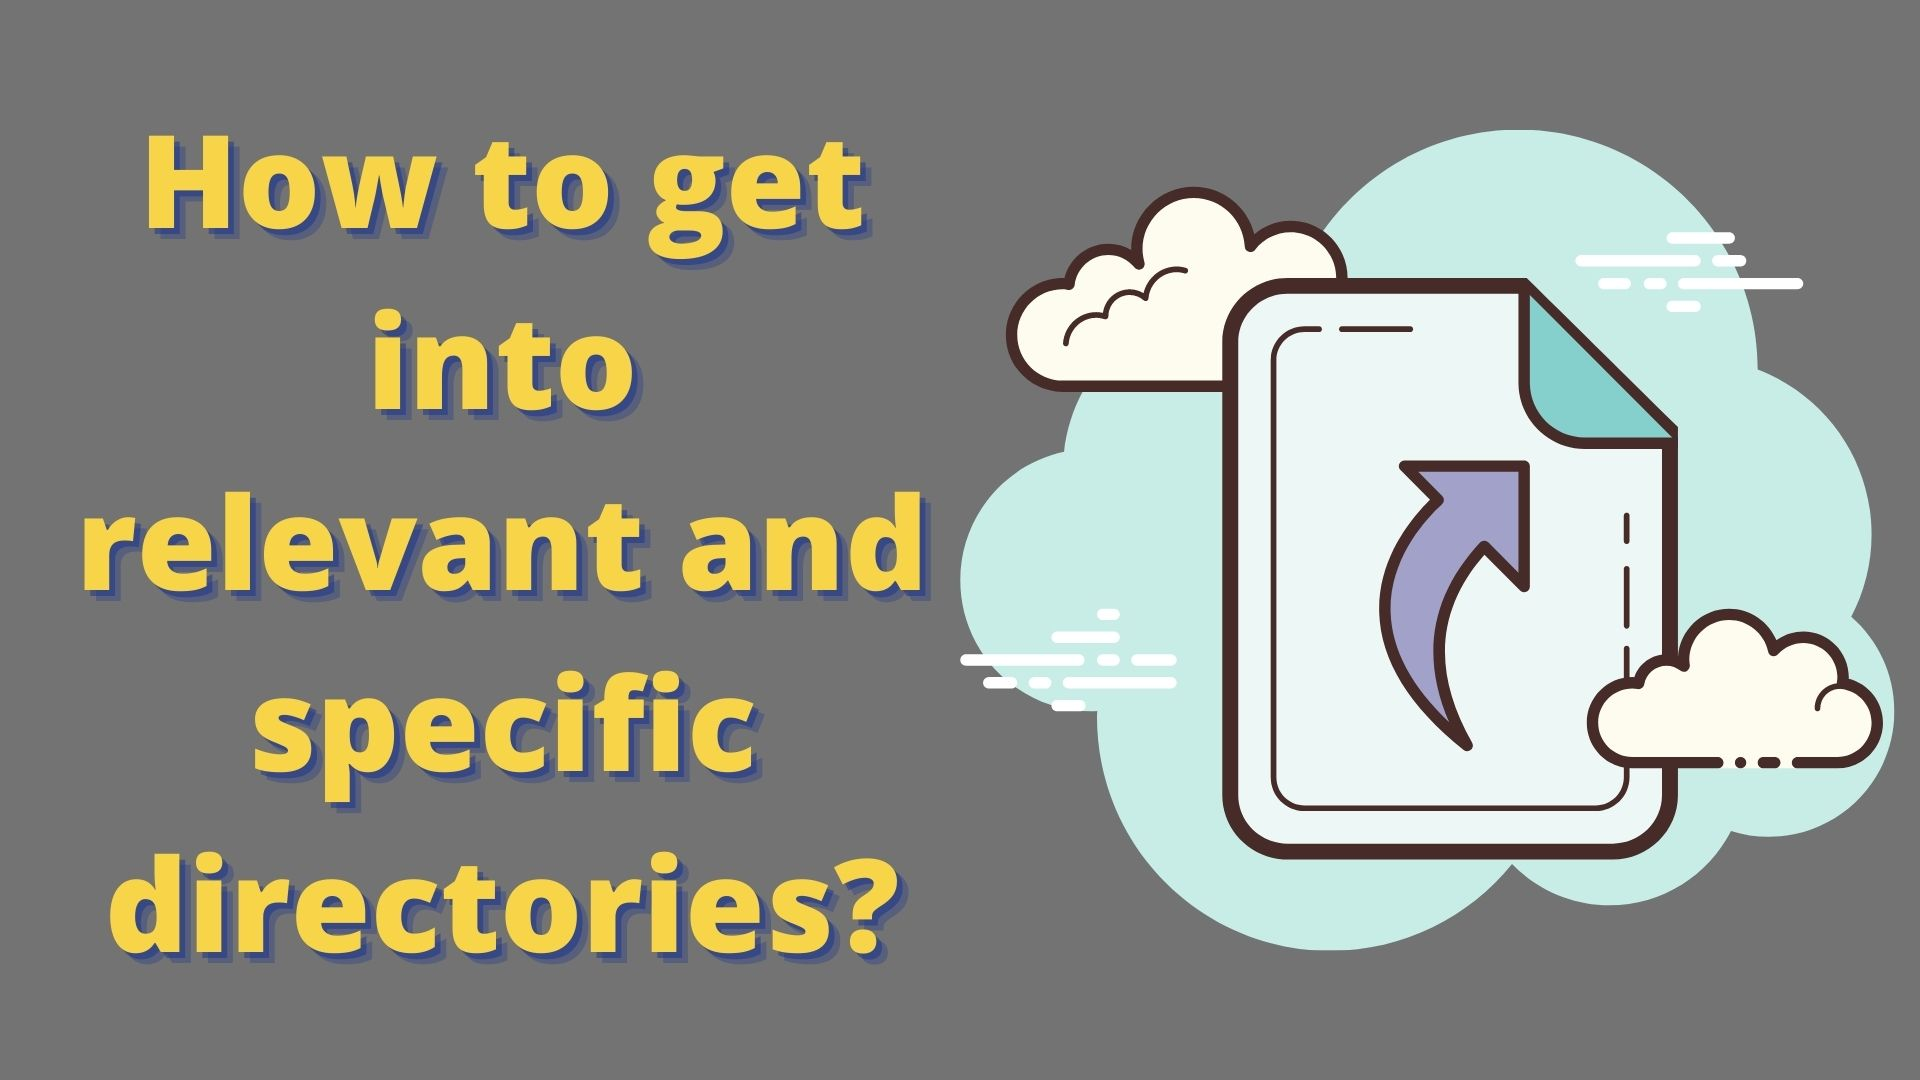 How to get into relevant and specific directories?